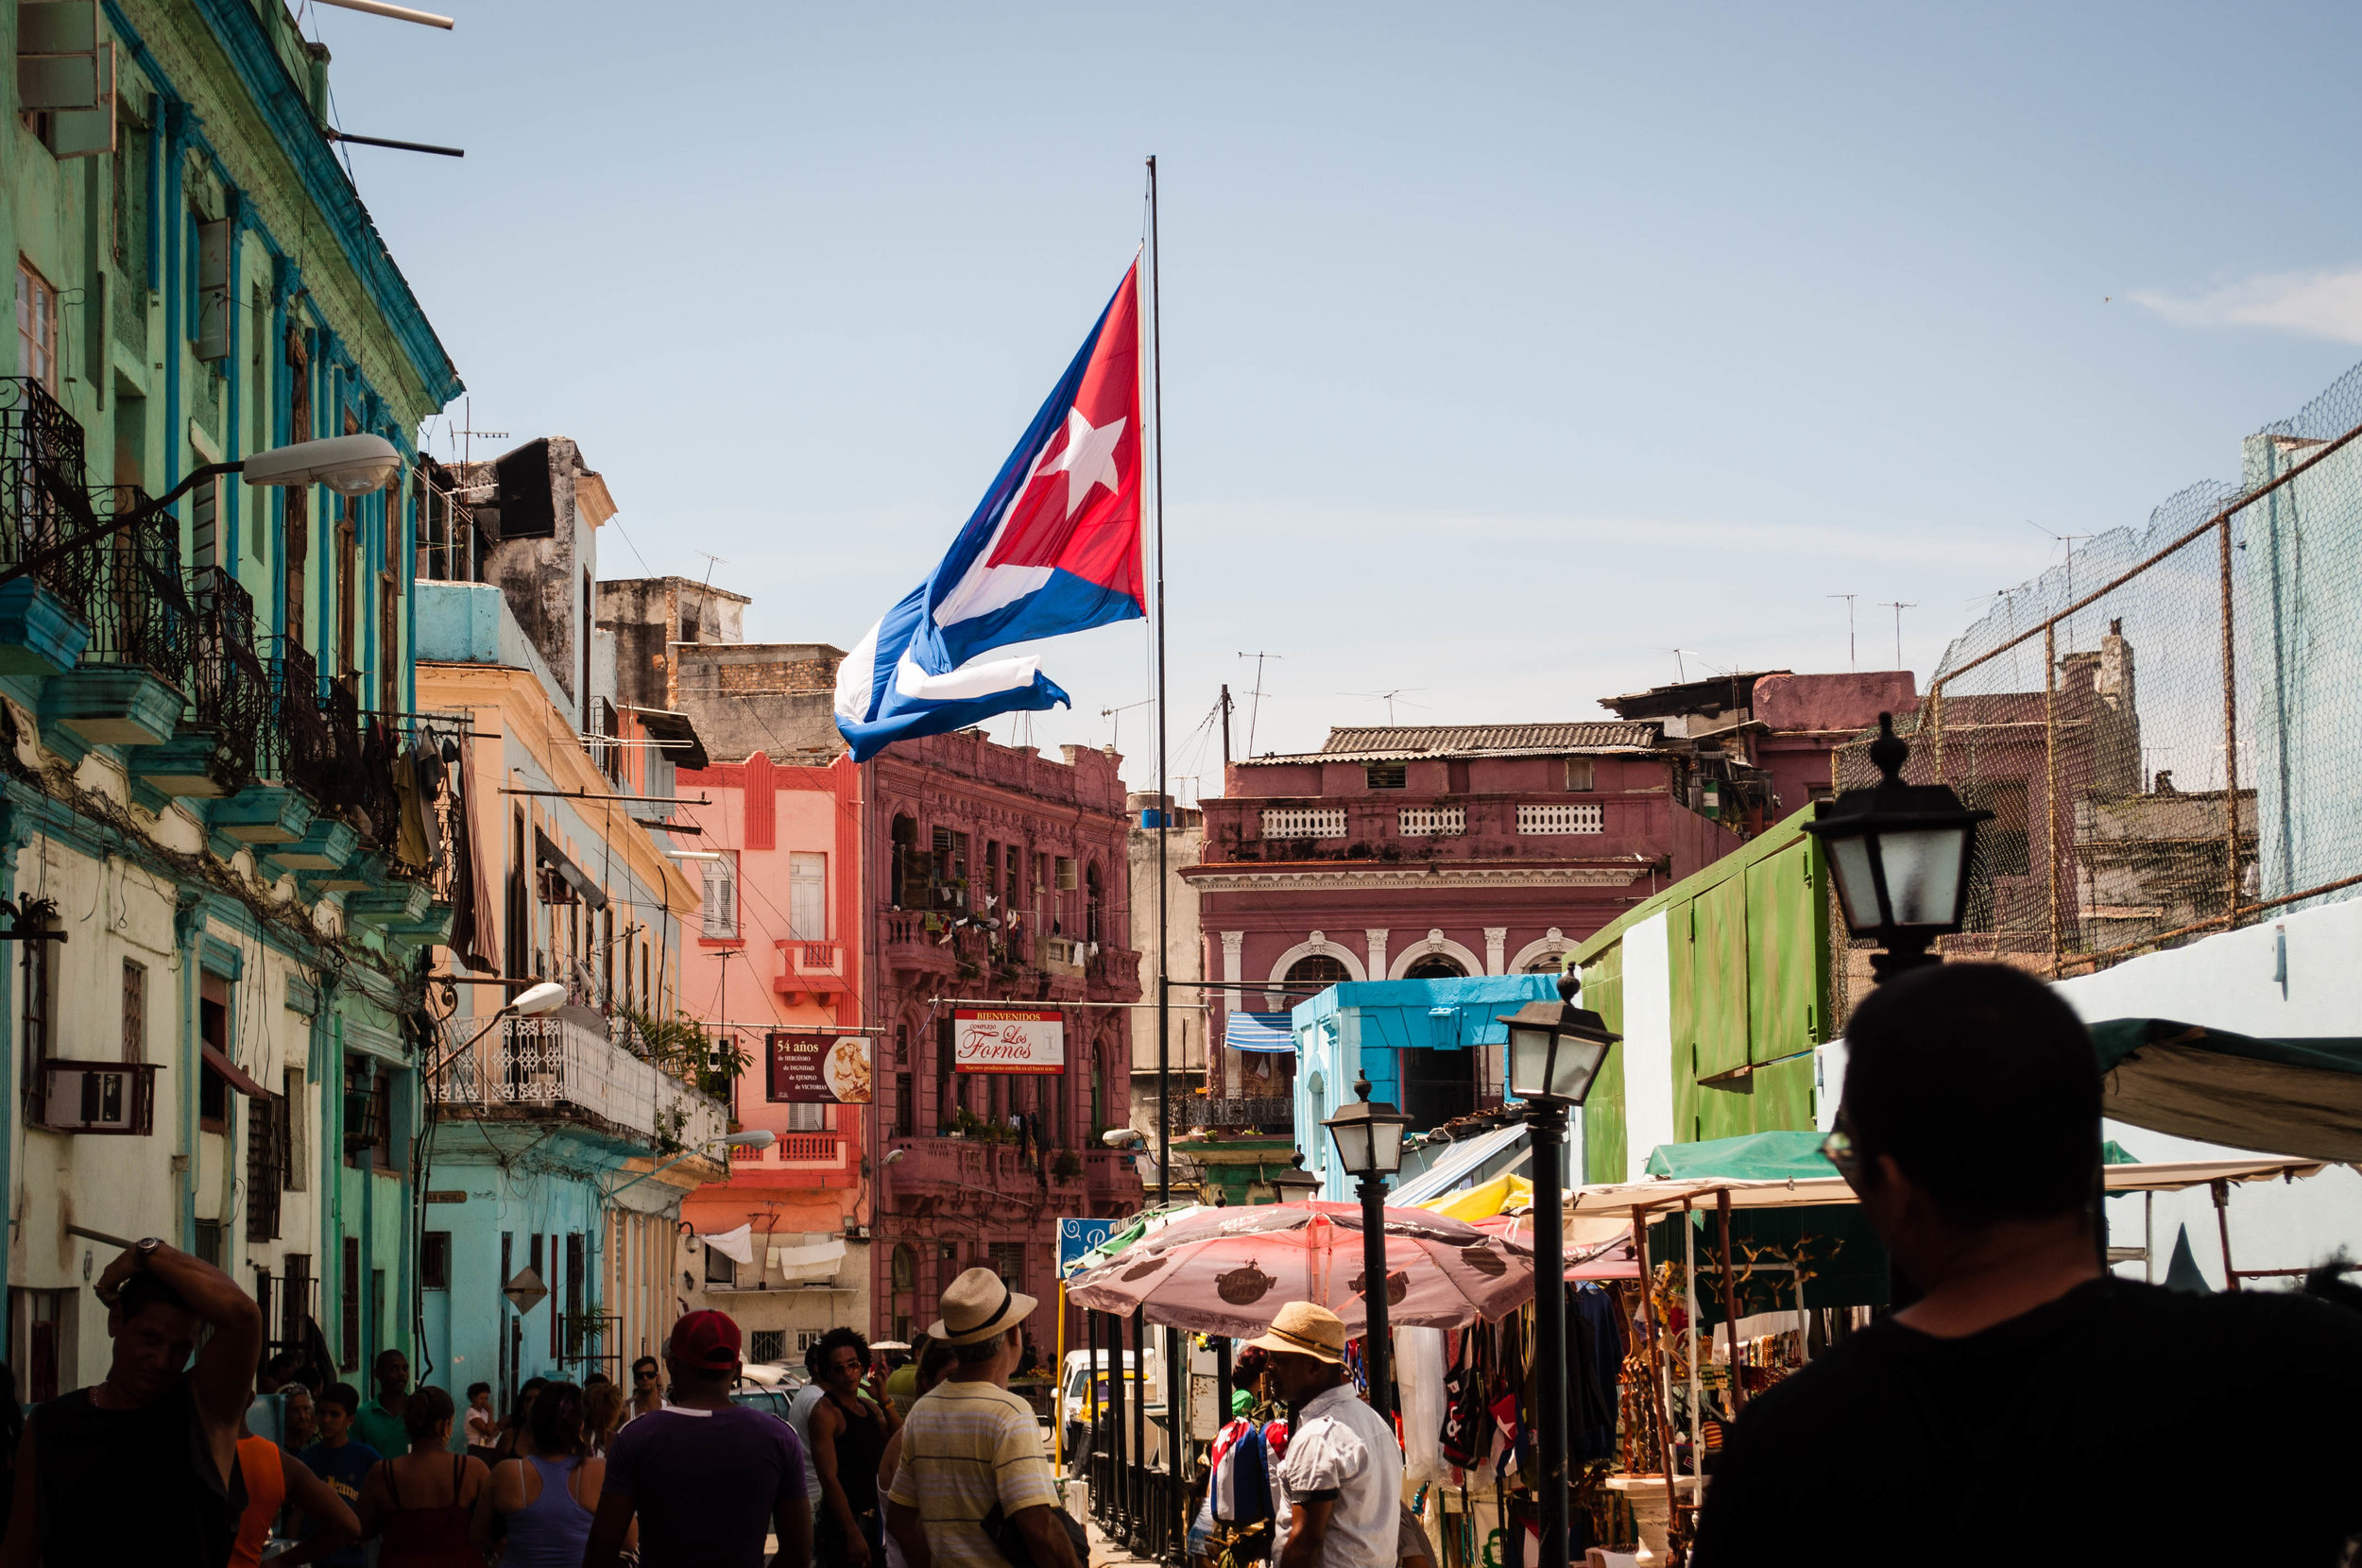 Giant Cuban flag in a large busy avenue with tourist surrounded by colourful buildings. This scene was seen during our day trip to La Havana